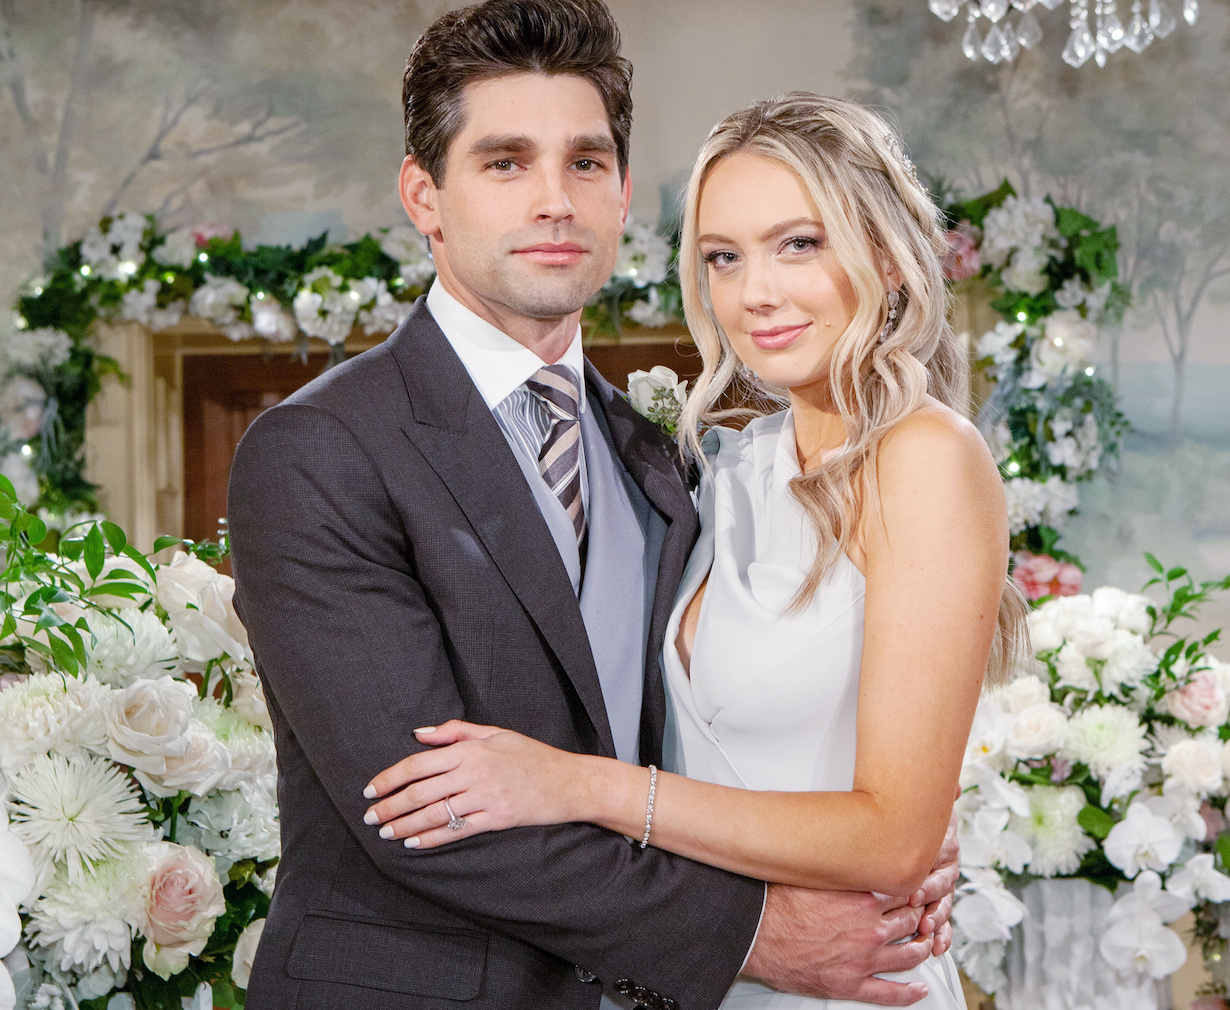 """Melissa Ordway, Justin Gaston """"The Young and the Restless"""" Set Wedding CBS television City Los Angeles 11/05/20 © Howard Wise/jpistudios.com 310-657-9661"""